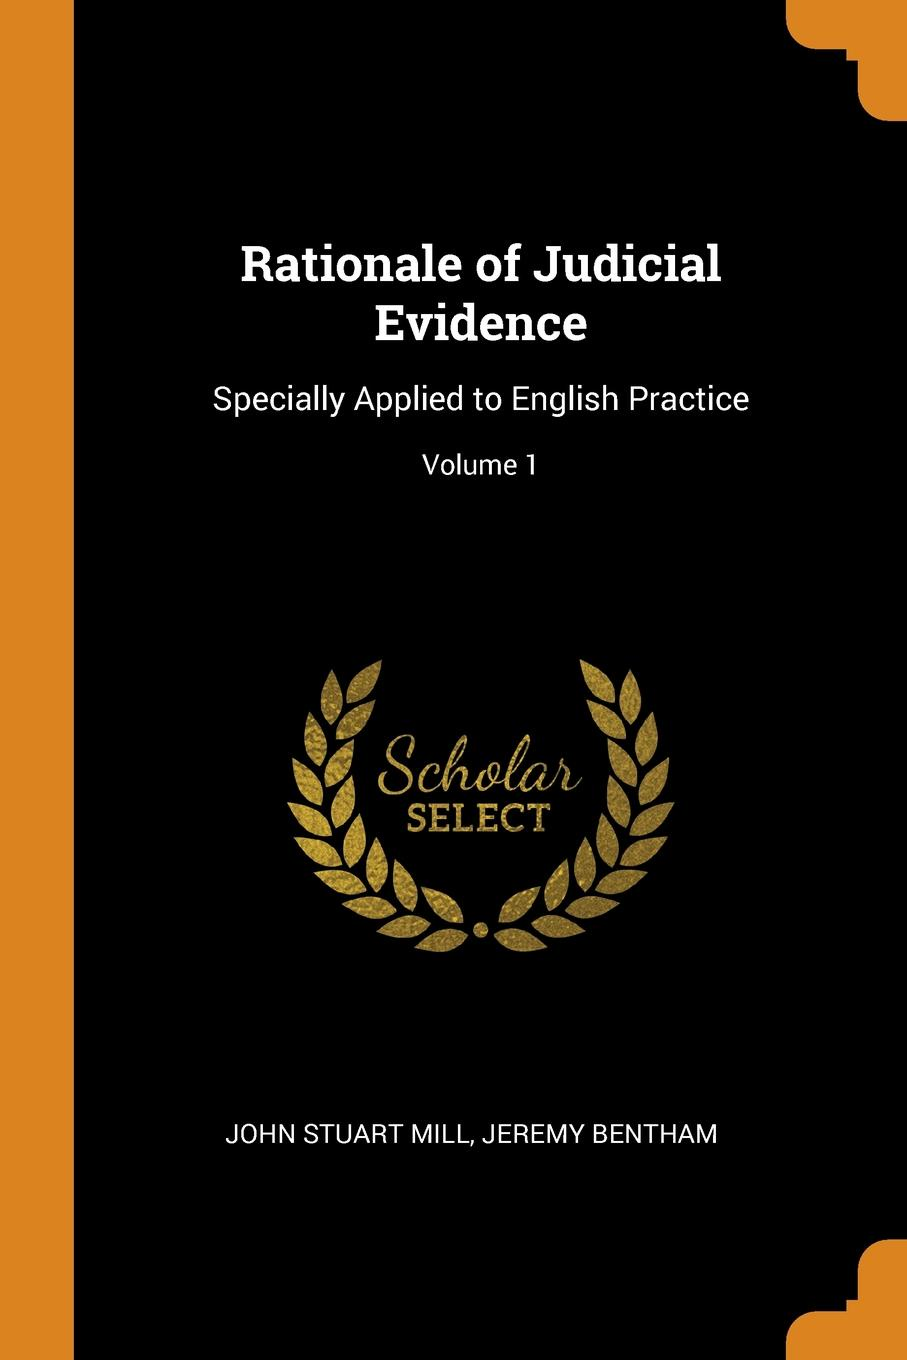 Rationale of Judicial Evidence. Specially Applied to English Practice; Volume 1. John Stuart Mill, Jeremy Bentham